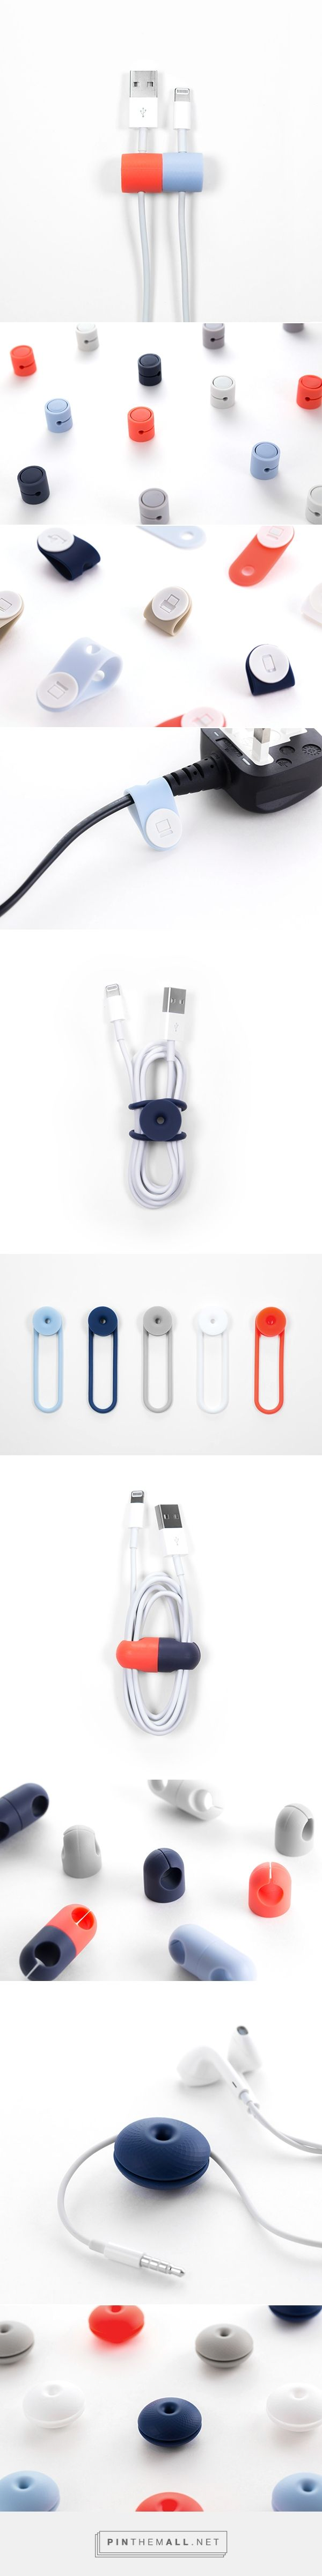 Cably on Behance - https://www.behance.net/gallery/19715785/Cably - created via http://pinthemall.net